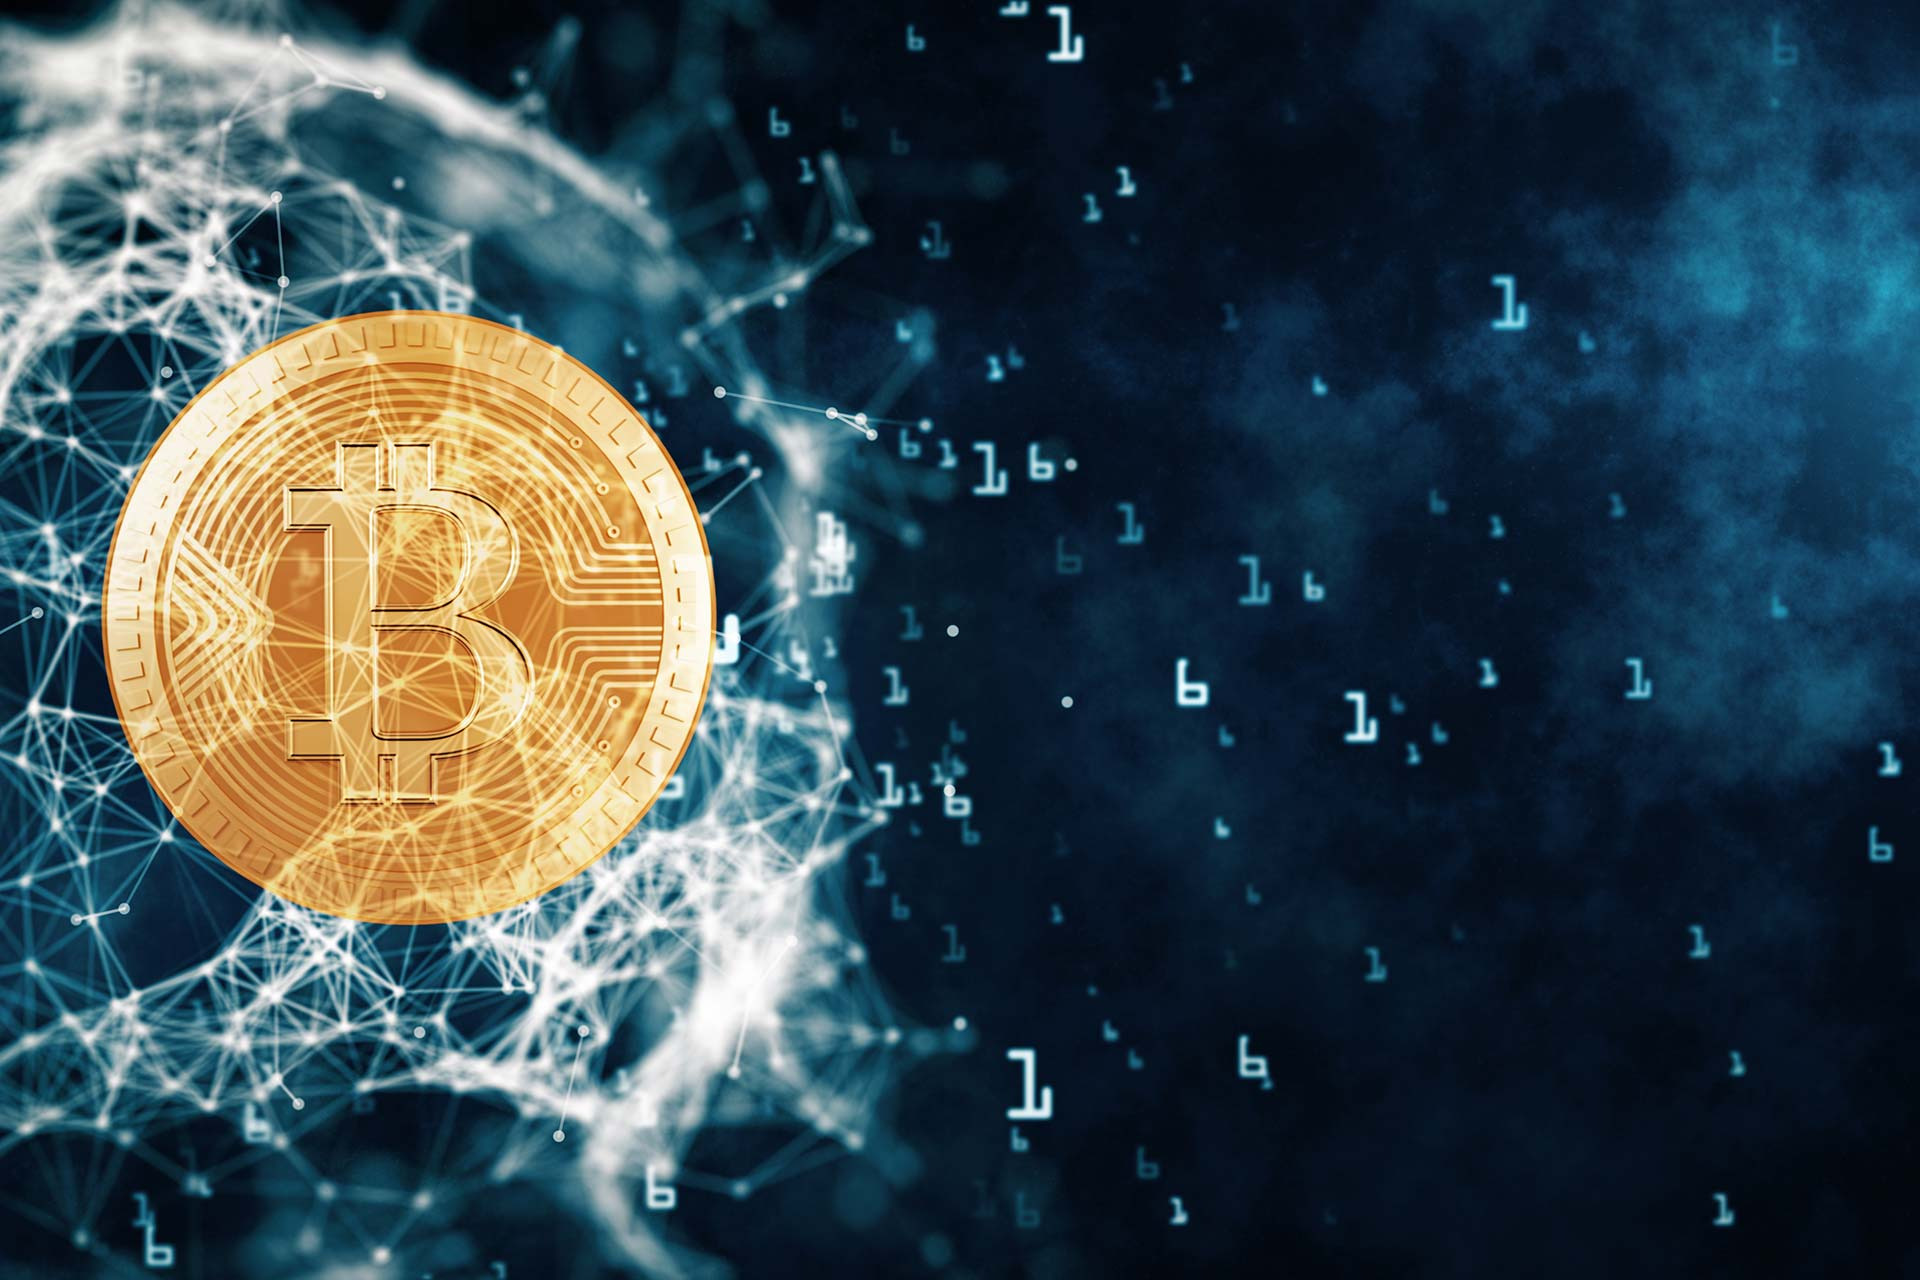 Understanding Cryptocurrency - Image of cyber/web background with bitcoins